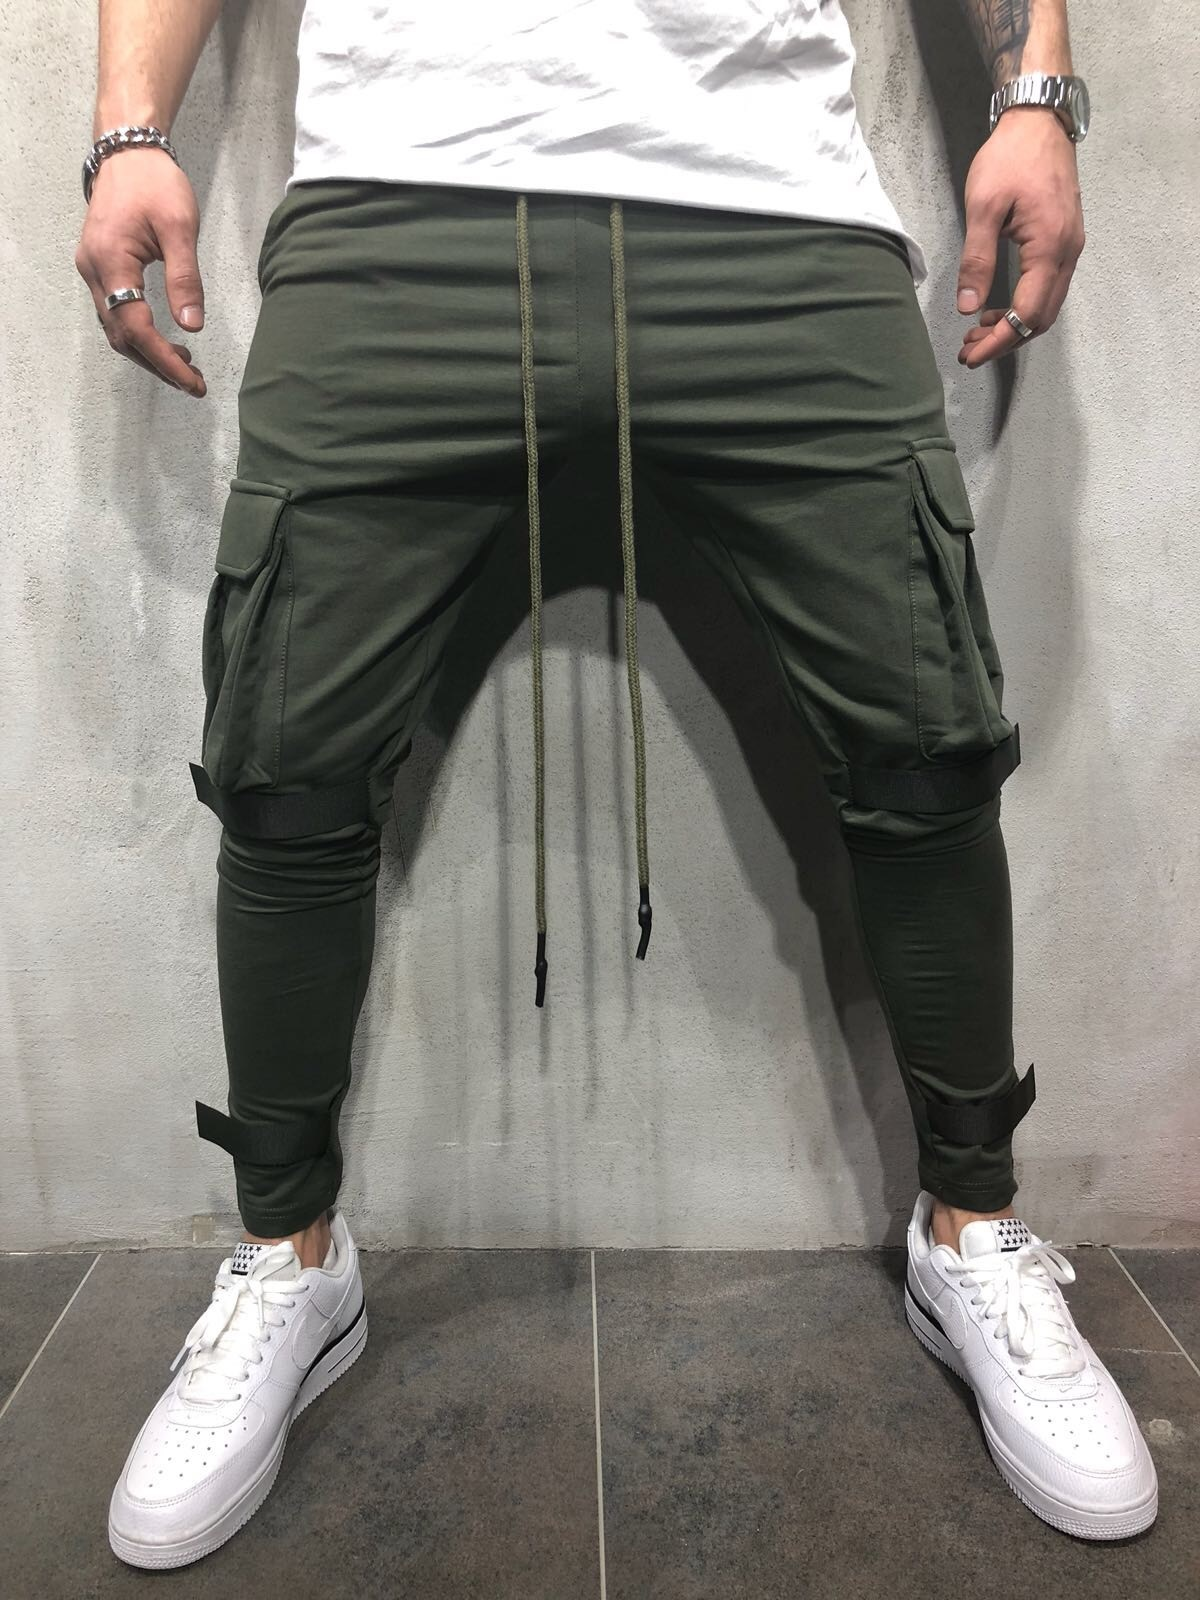 2019 Men Large Pocket Fitness Drawstring Top Skinny Pants Velcro Slim Fit Athletic Pants Ouma